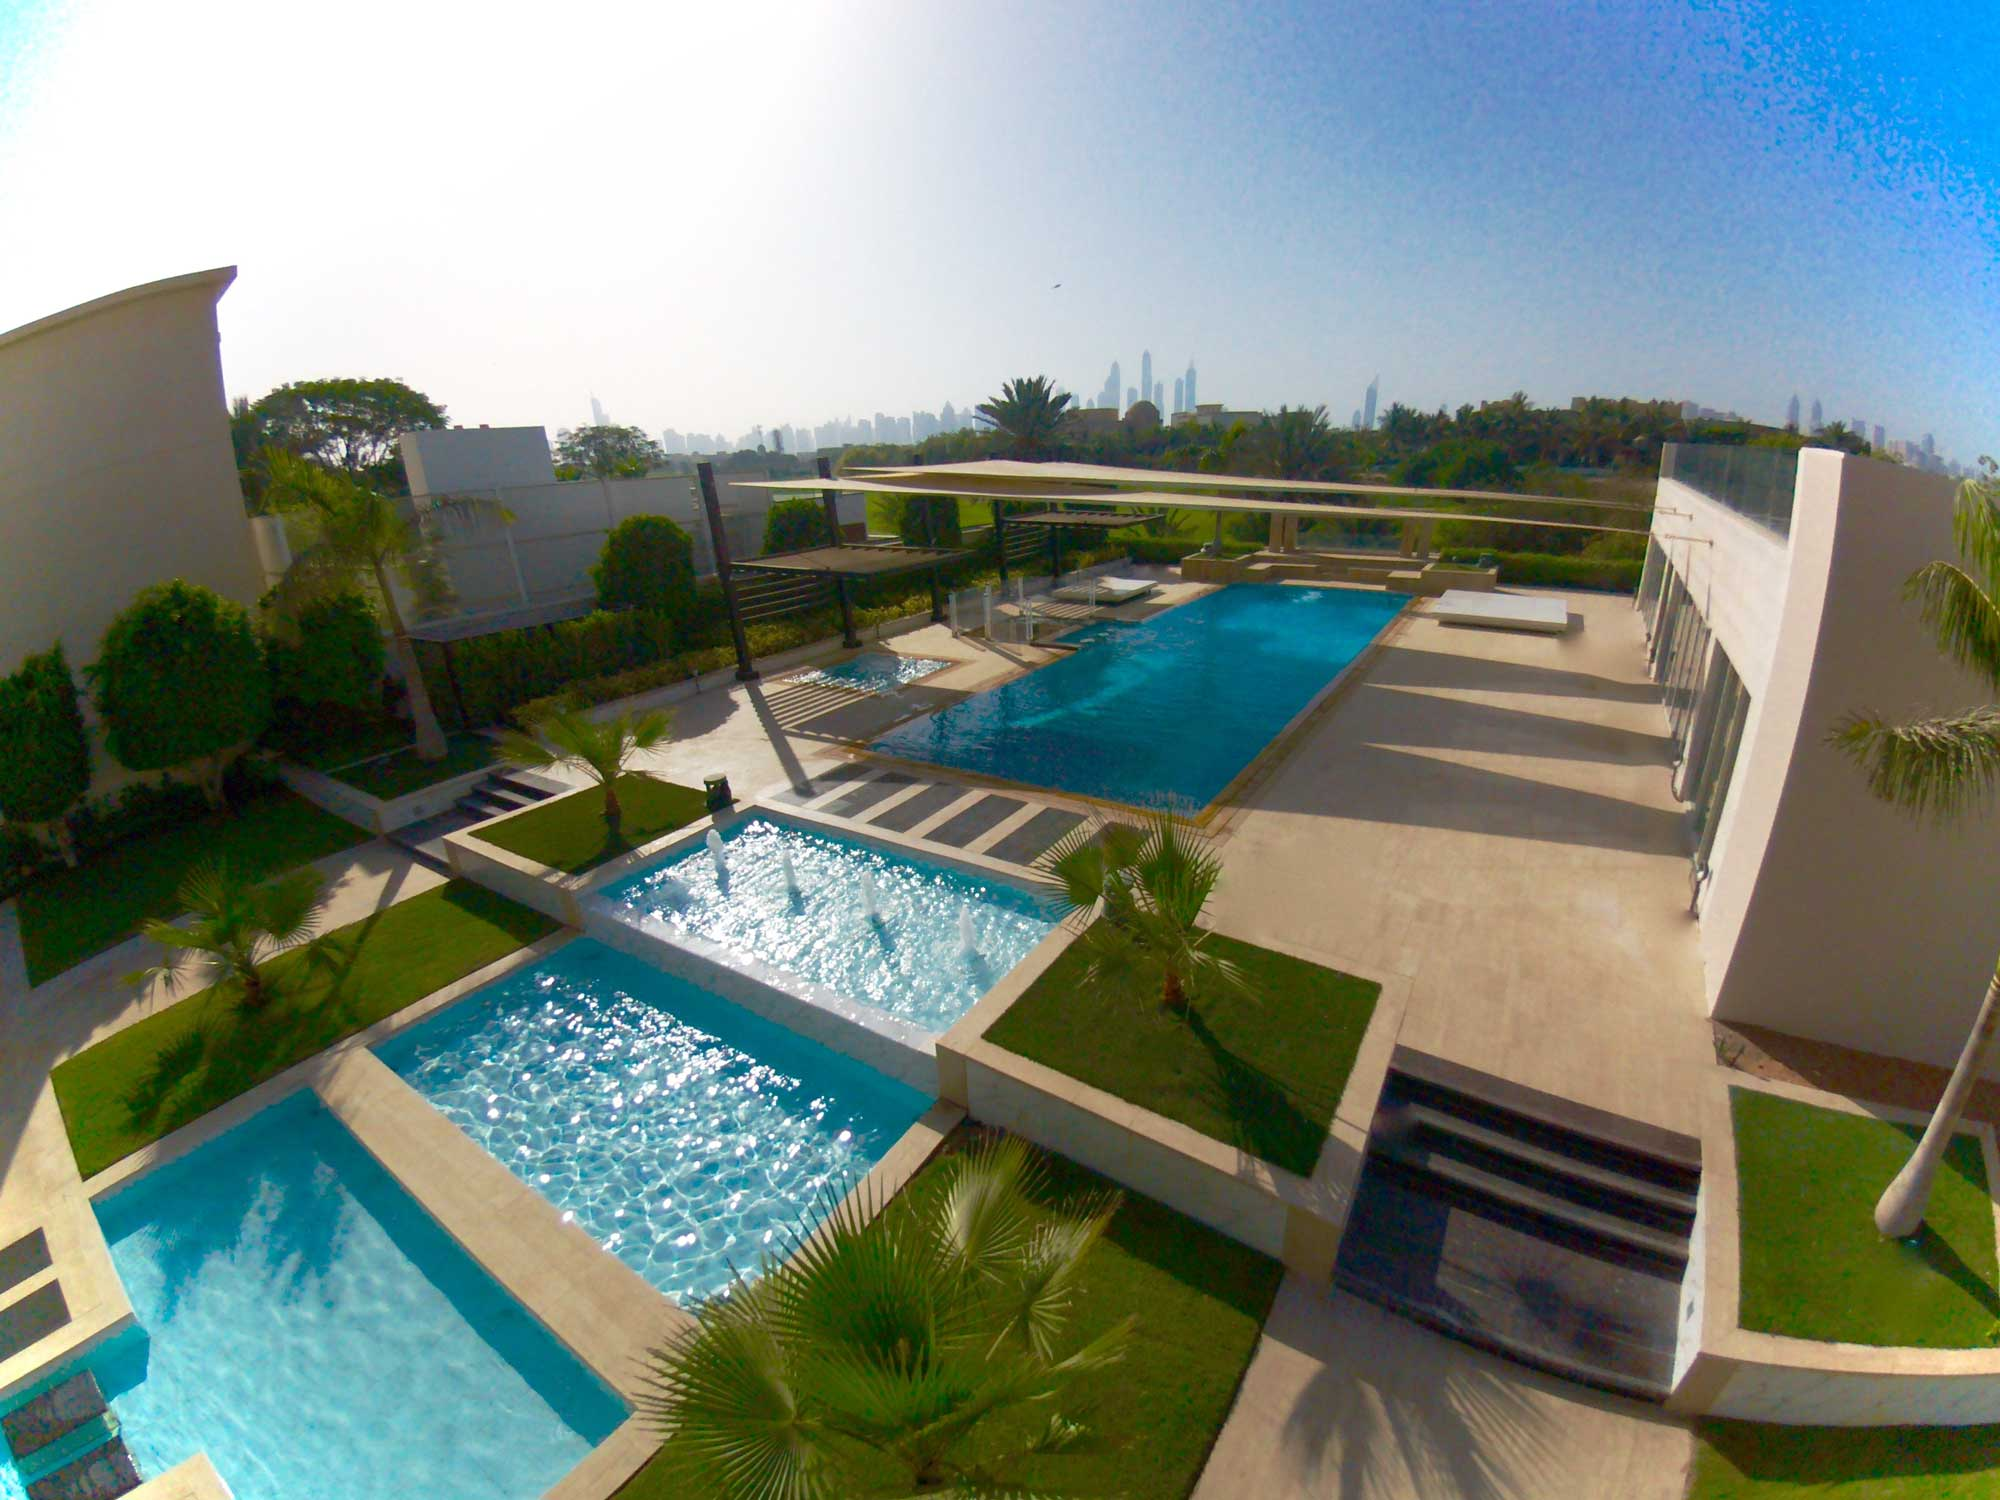 World class swimming pools based in uae absolute pools for Pool design dubai